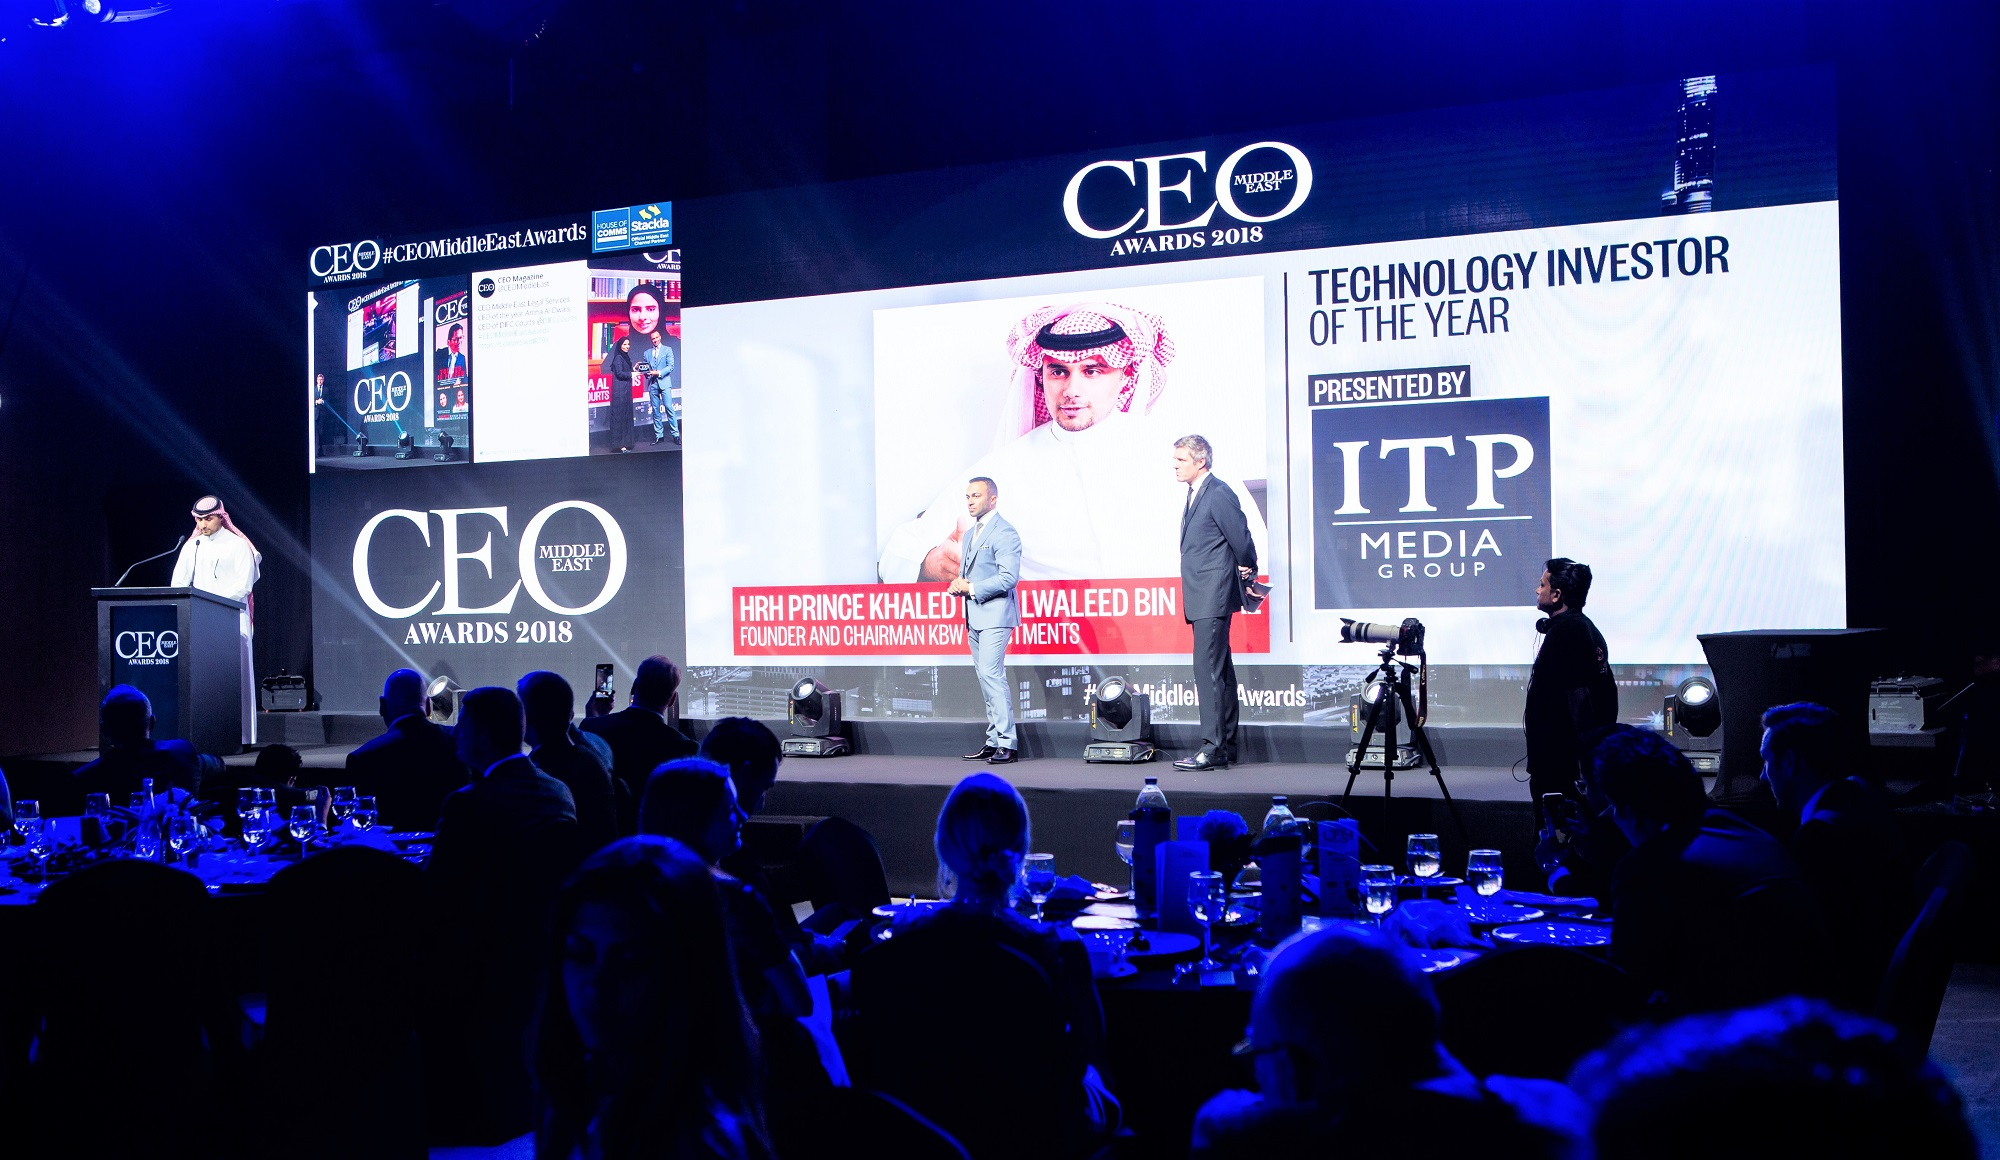 CEO Awards 2018